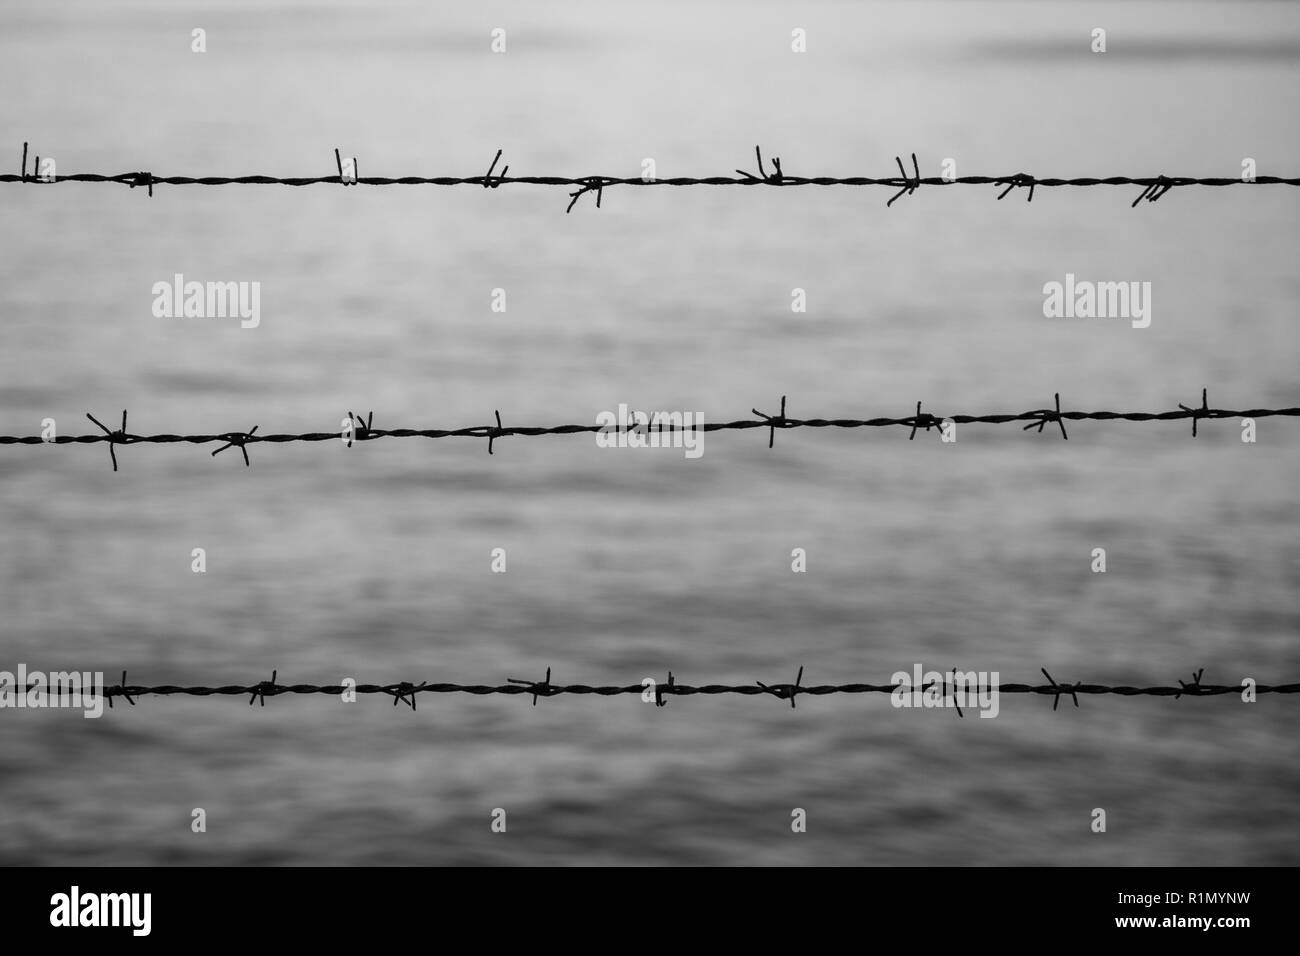 Silhouette of barbed wire fence against blurry water in the evening in black and white. Focused on the foreground. - Stock Image